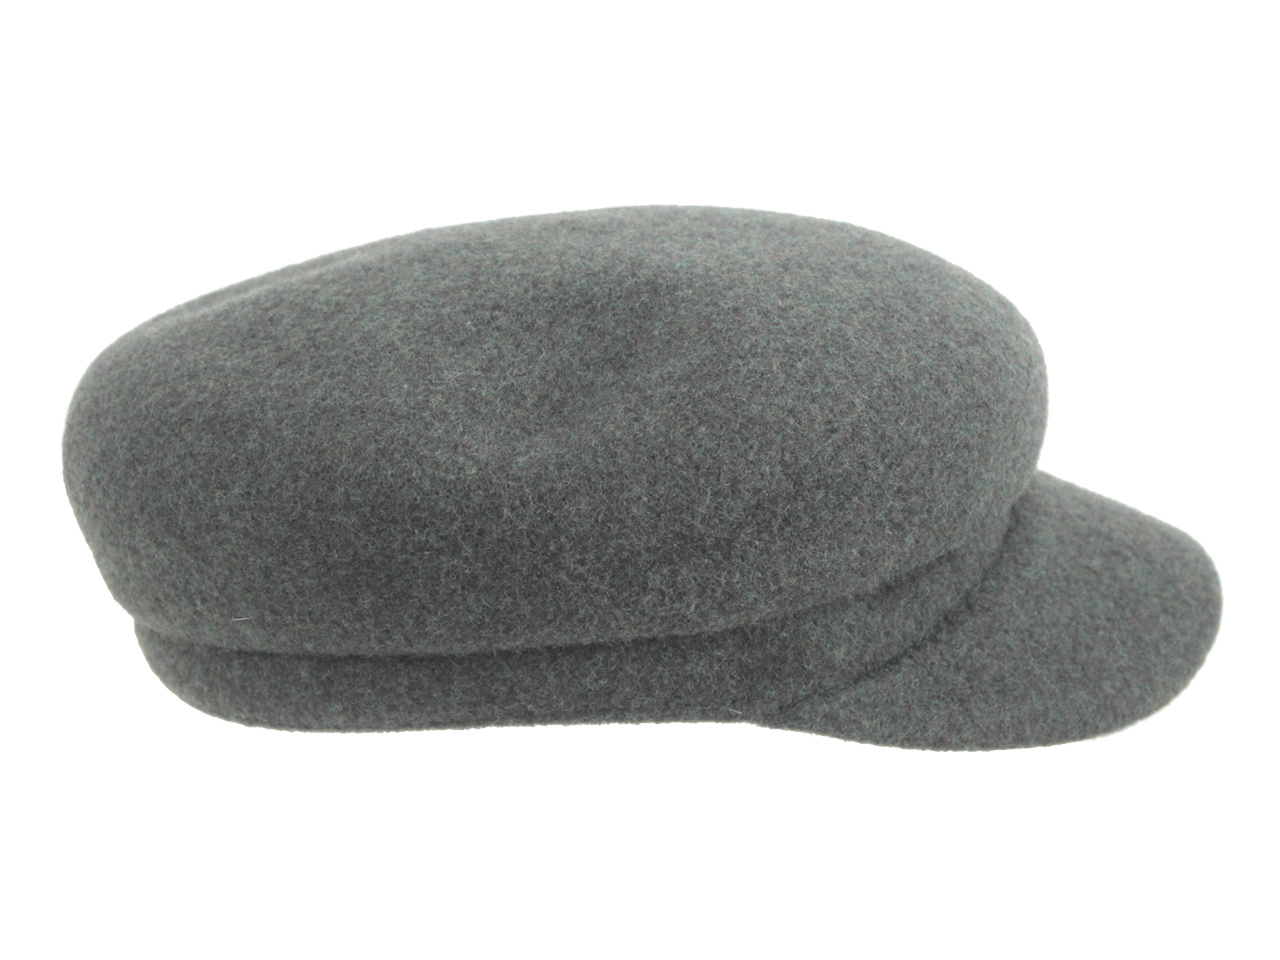 Kangol Men s Wool Enfield Fisherman Cap Hat  65ae94867d27